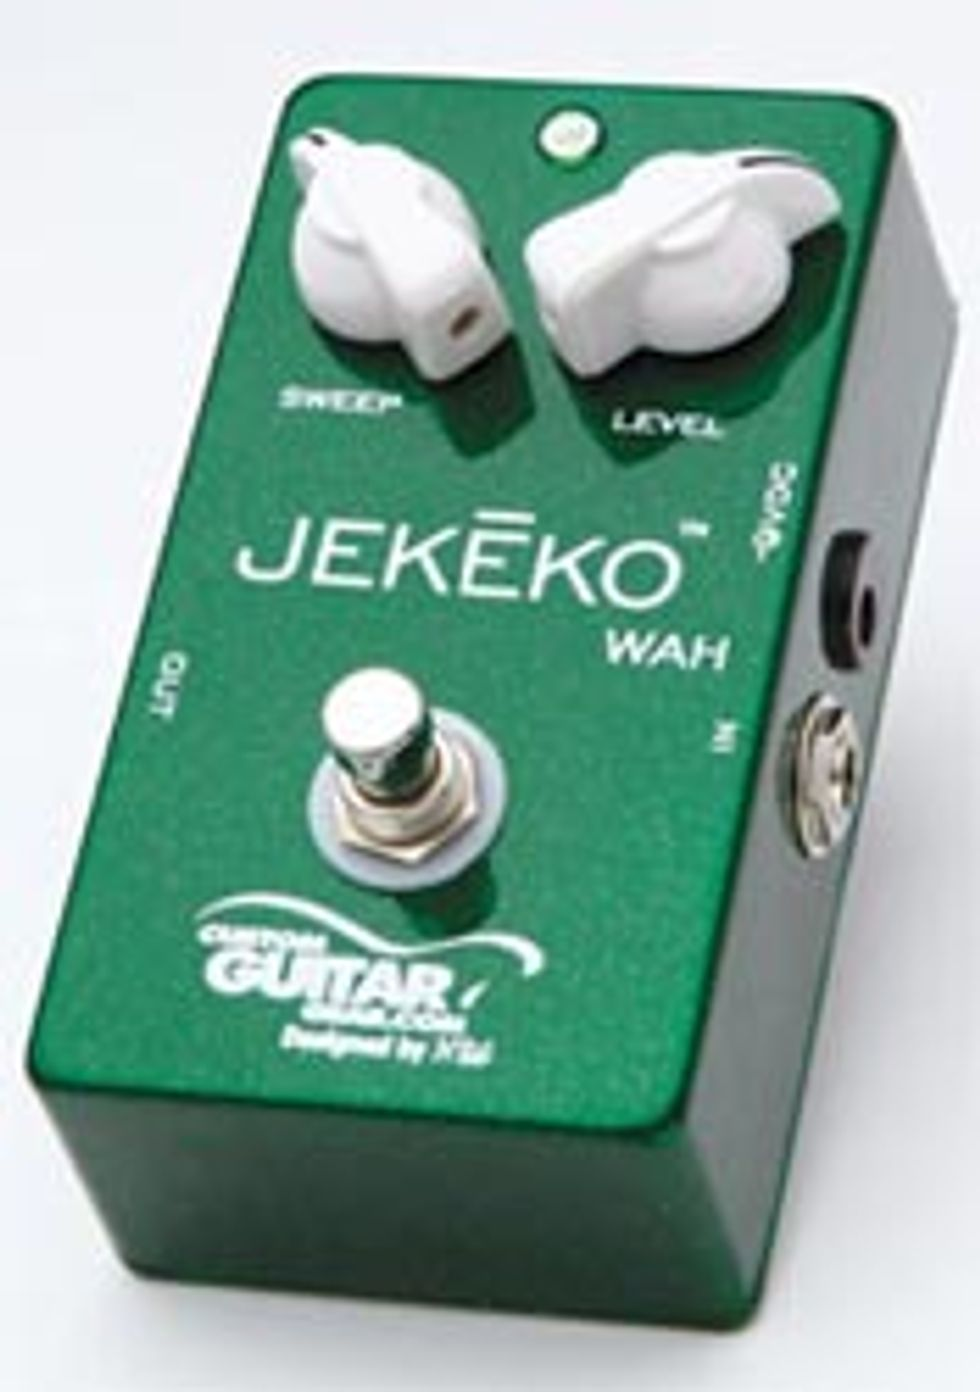 CustomGuitarGear: Jekeko Fixed Wah